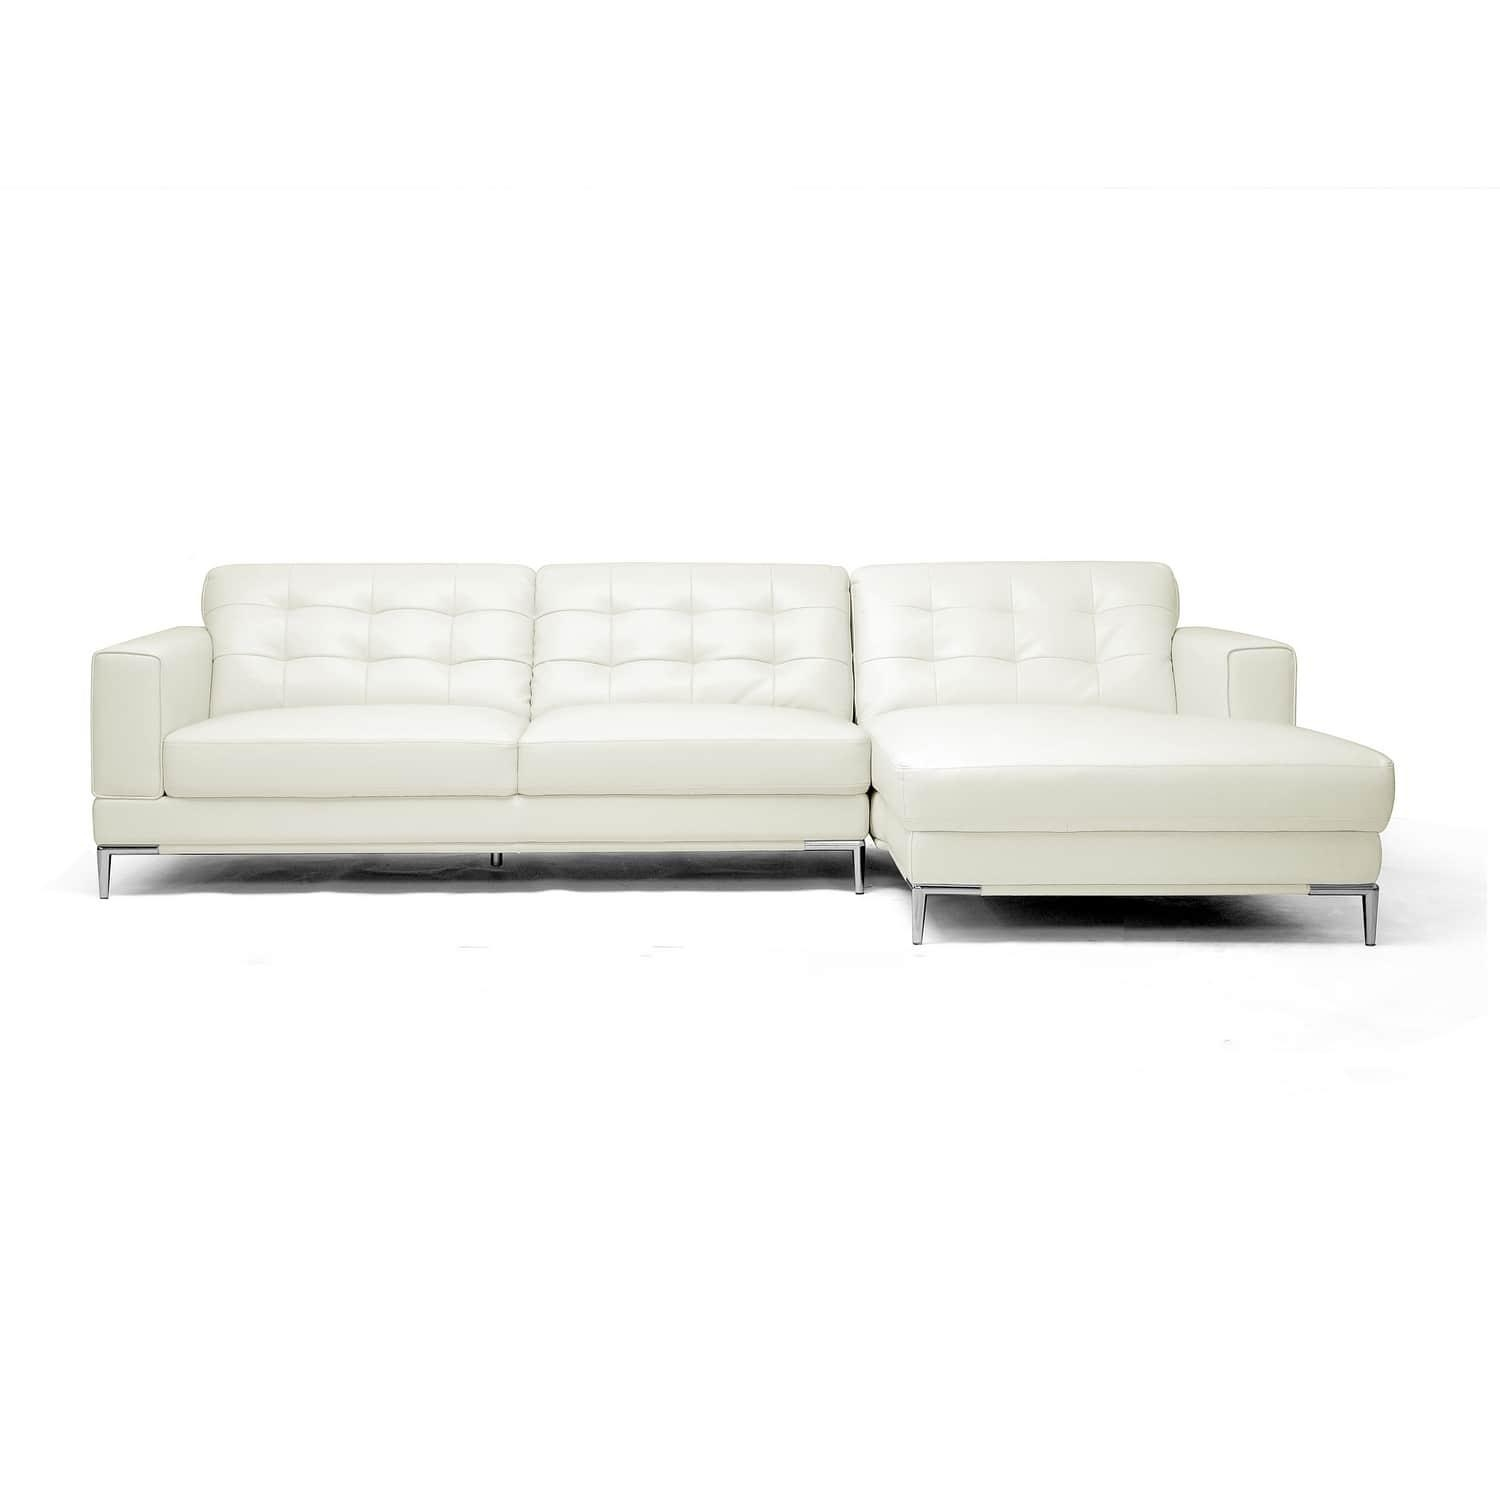 Babbitt Sleek Ivory Leather Modern Sectional Sofa – Free Shipping With Regard To Sleek Sectional Sofa (View 8 of 20)